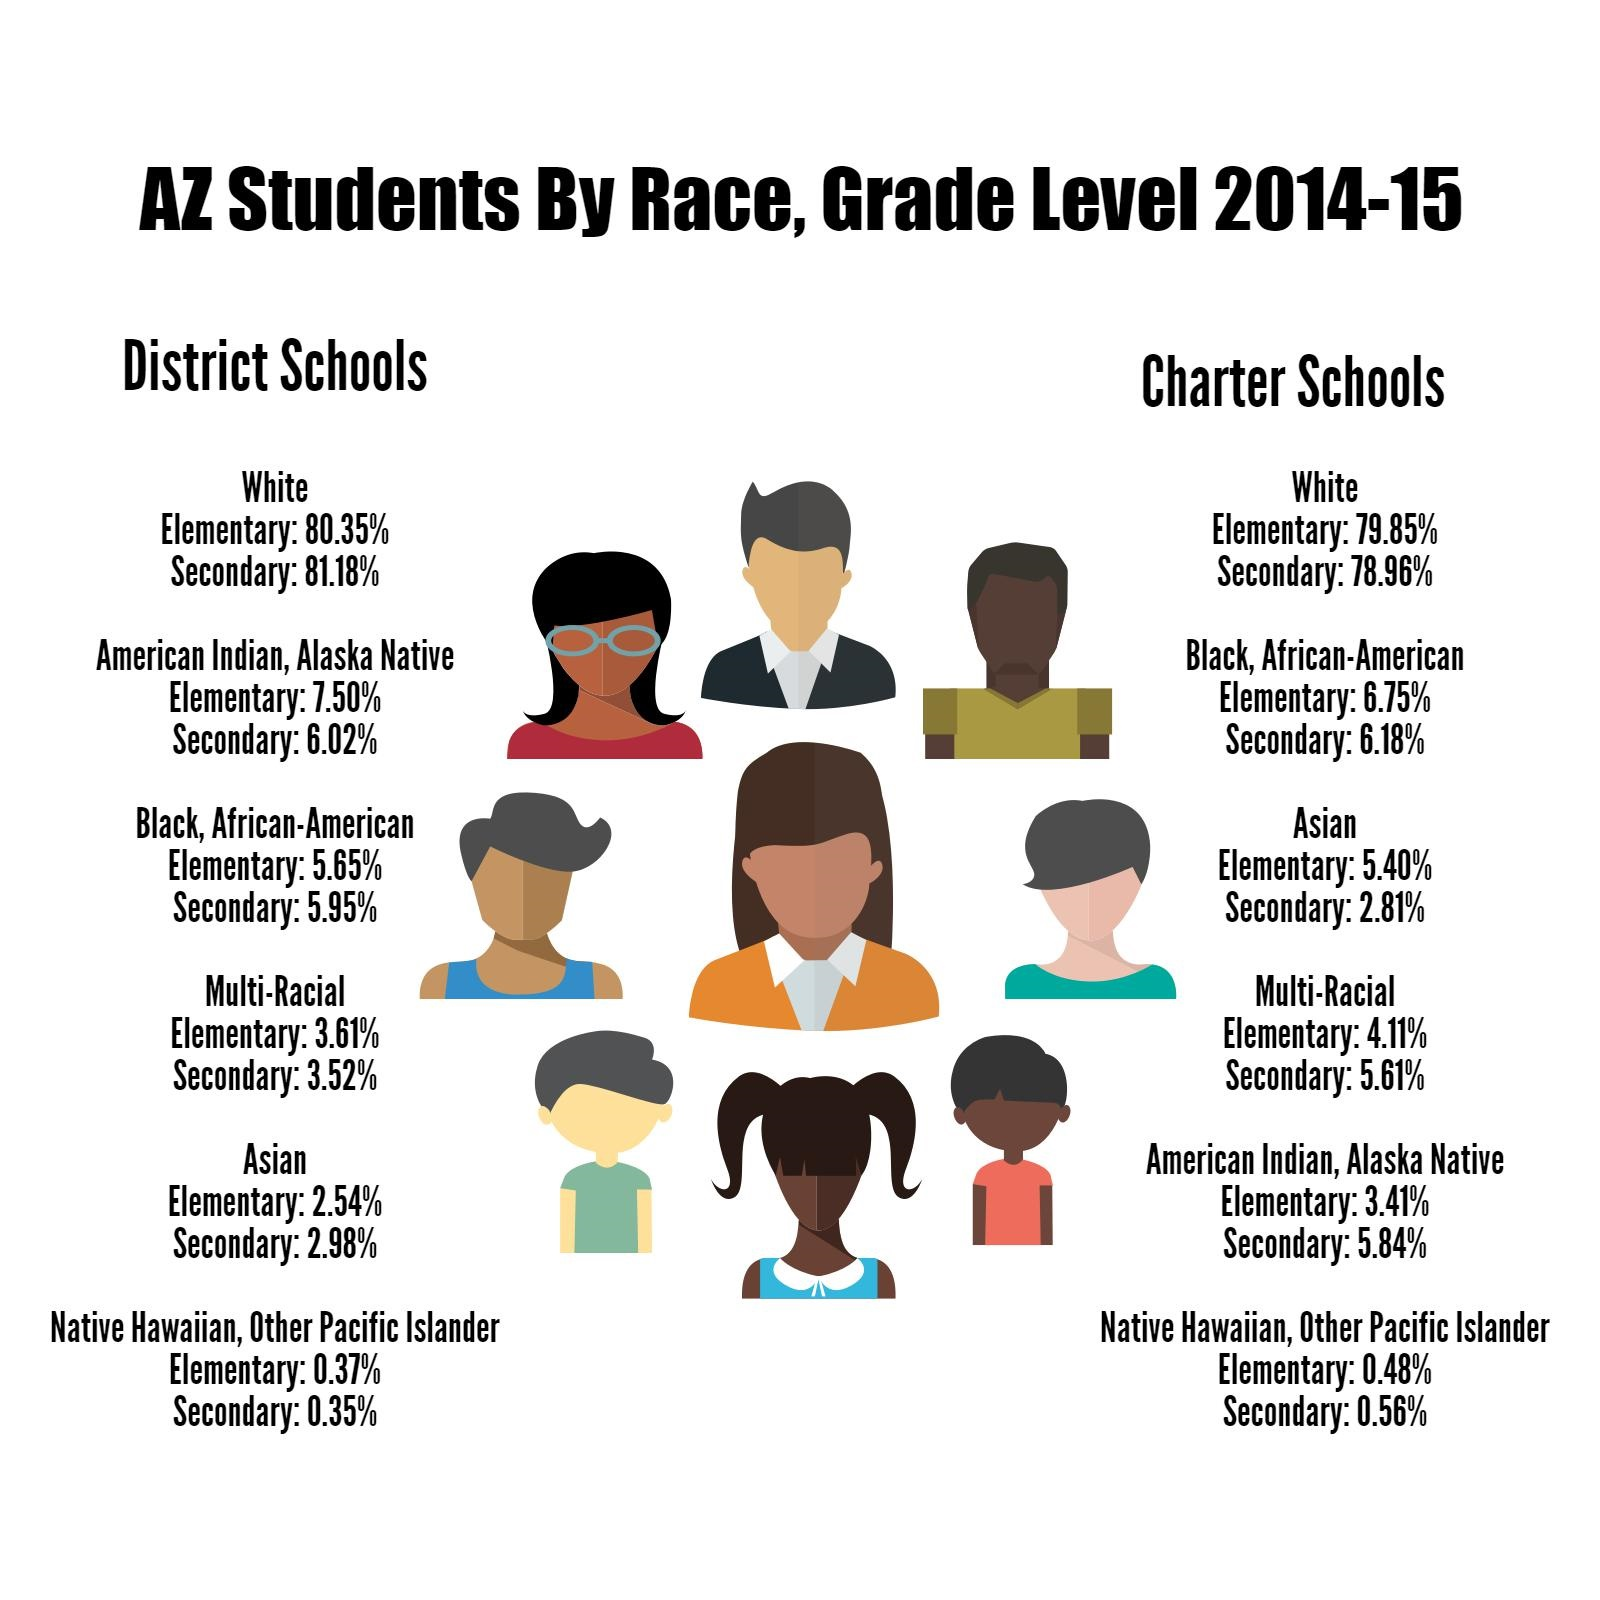 AZ student snapshot: Who they are and what's spent on them (+ Infographic) Updatedazstudentsbyracegrade2014-15